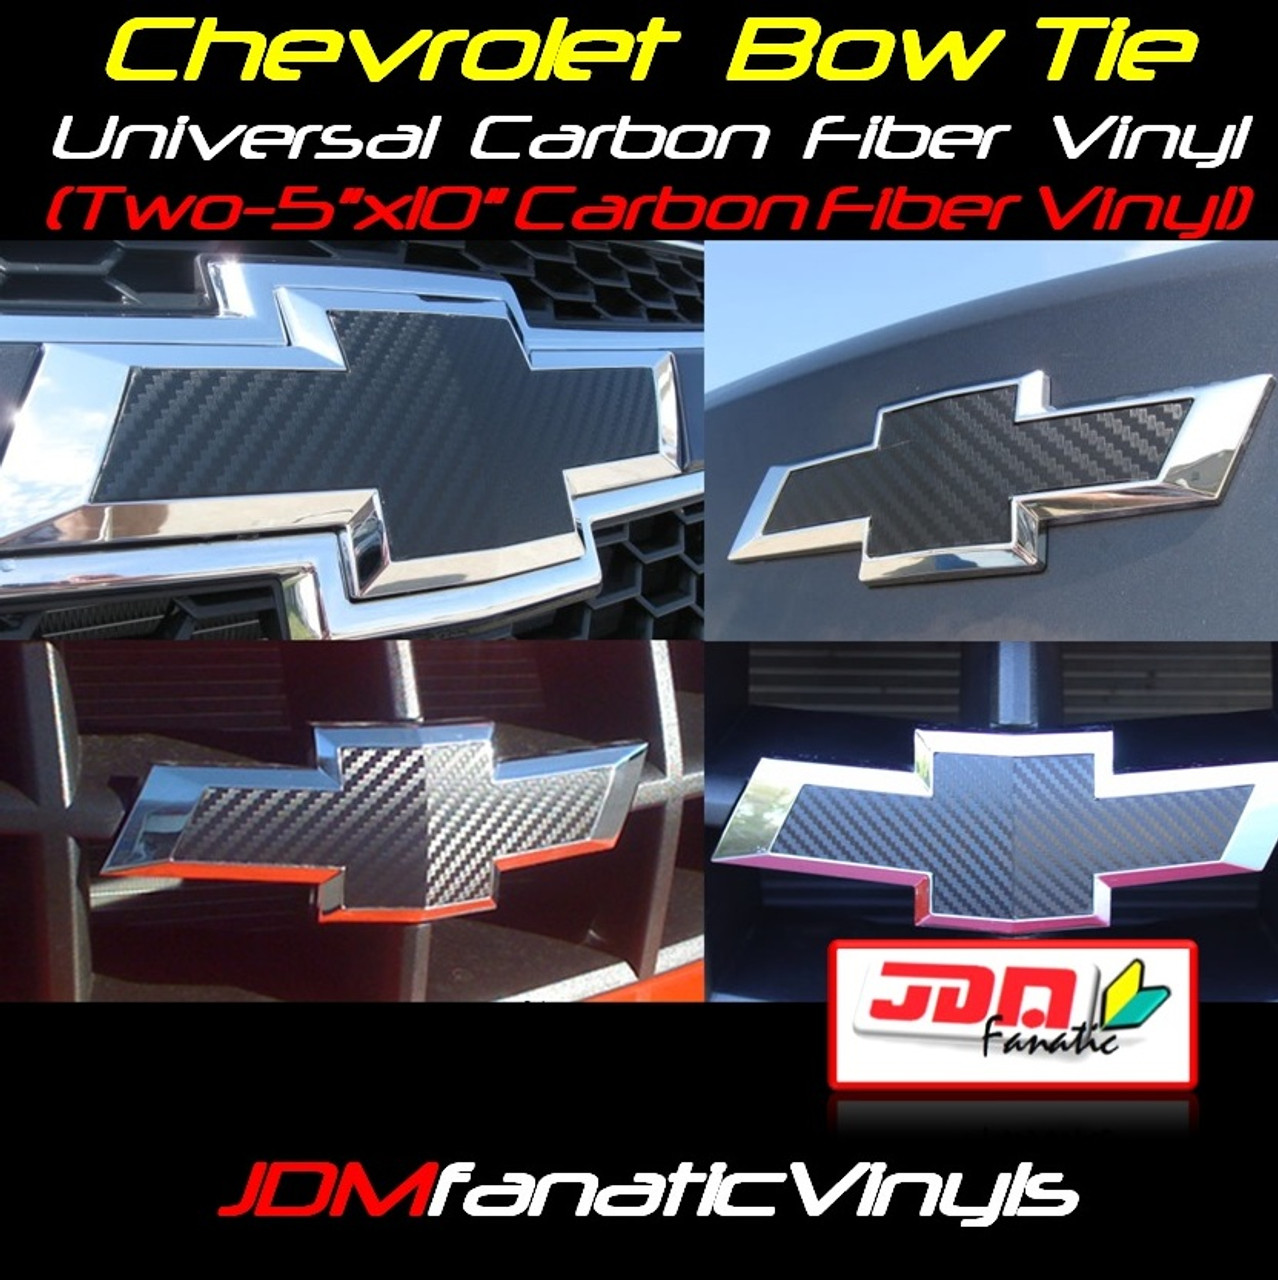 """x3 Red 3M Cut-Your-Own Car Wrap Kit DIY GM Logo Easy to Install air Release Film 12/"""" x 4/"""" Sheets 3 Pack Qbc Craft Chevy Bowtie Emblem Vinyl Overlay"""